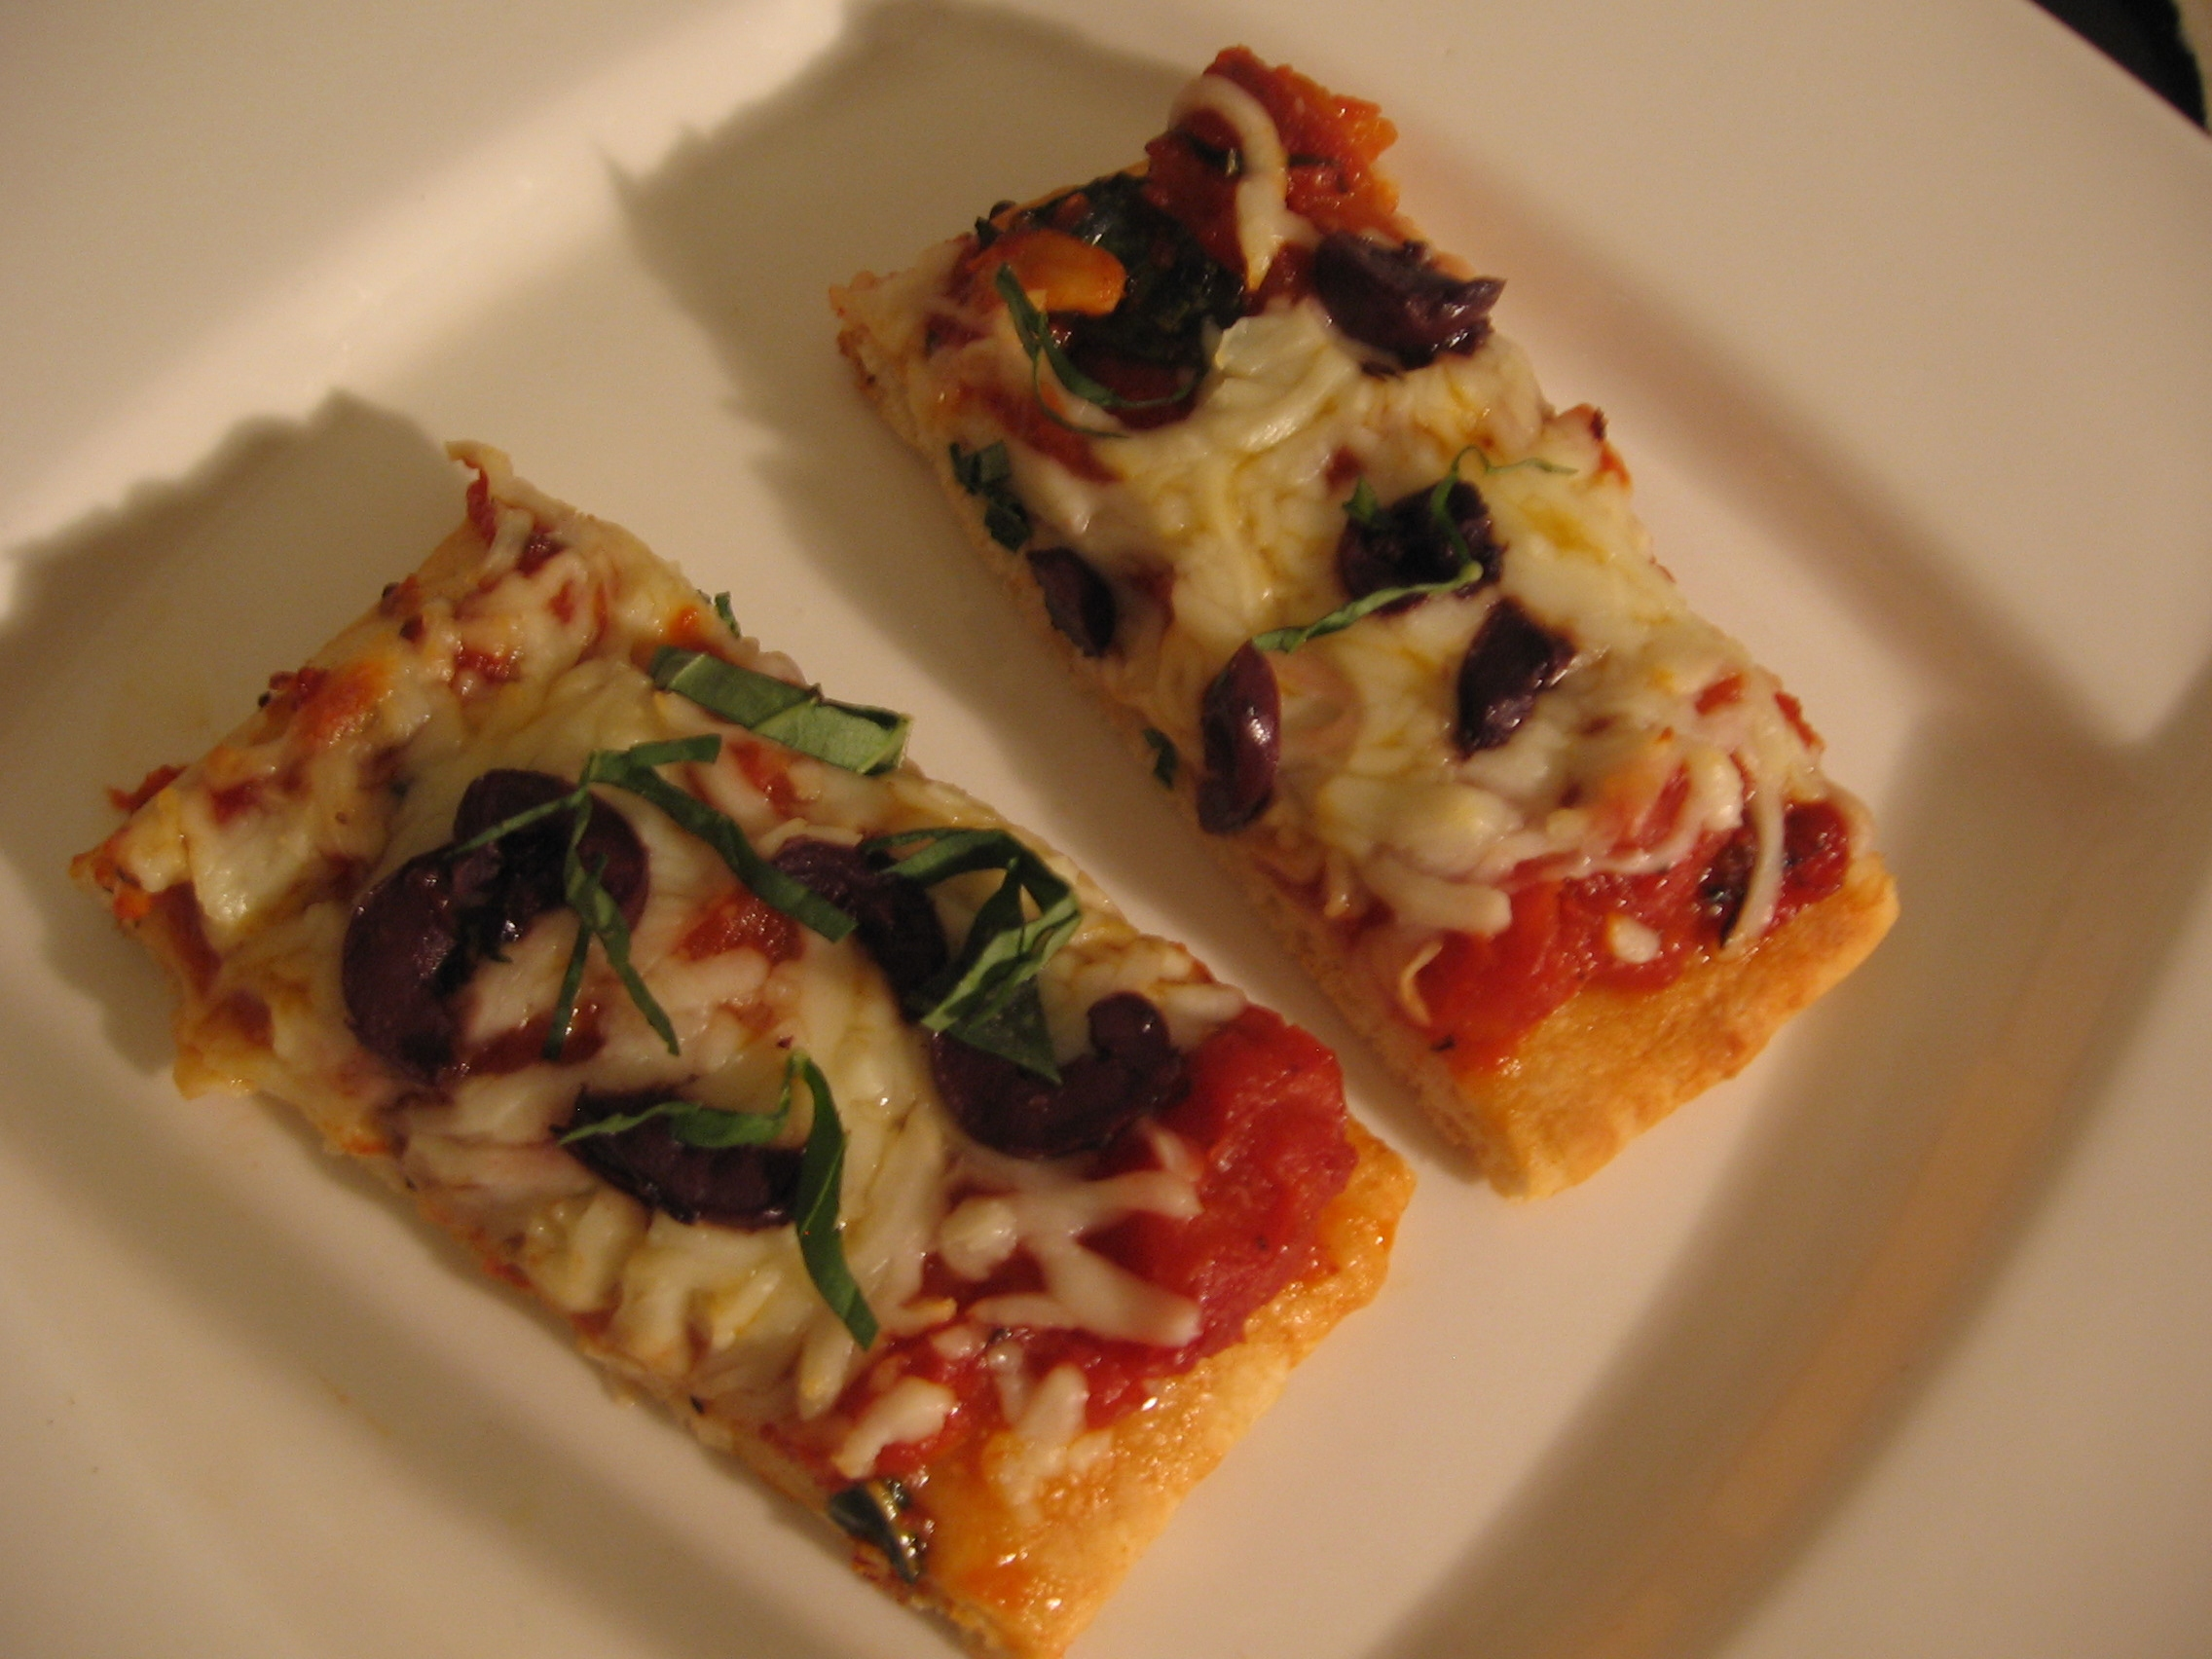 gourmet flat bread pizza s easy entertaining amy 39 s blog. Black Bedroom Furniture Sets. Home Design Ideas